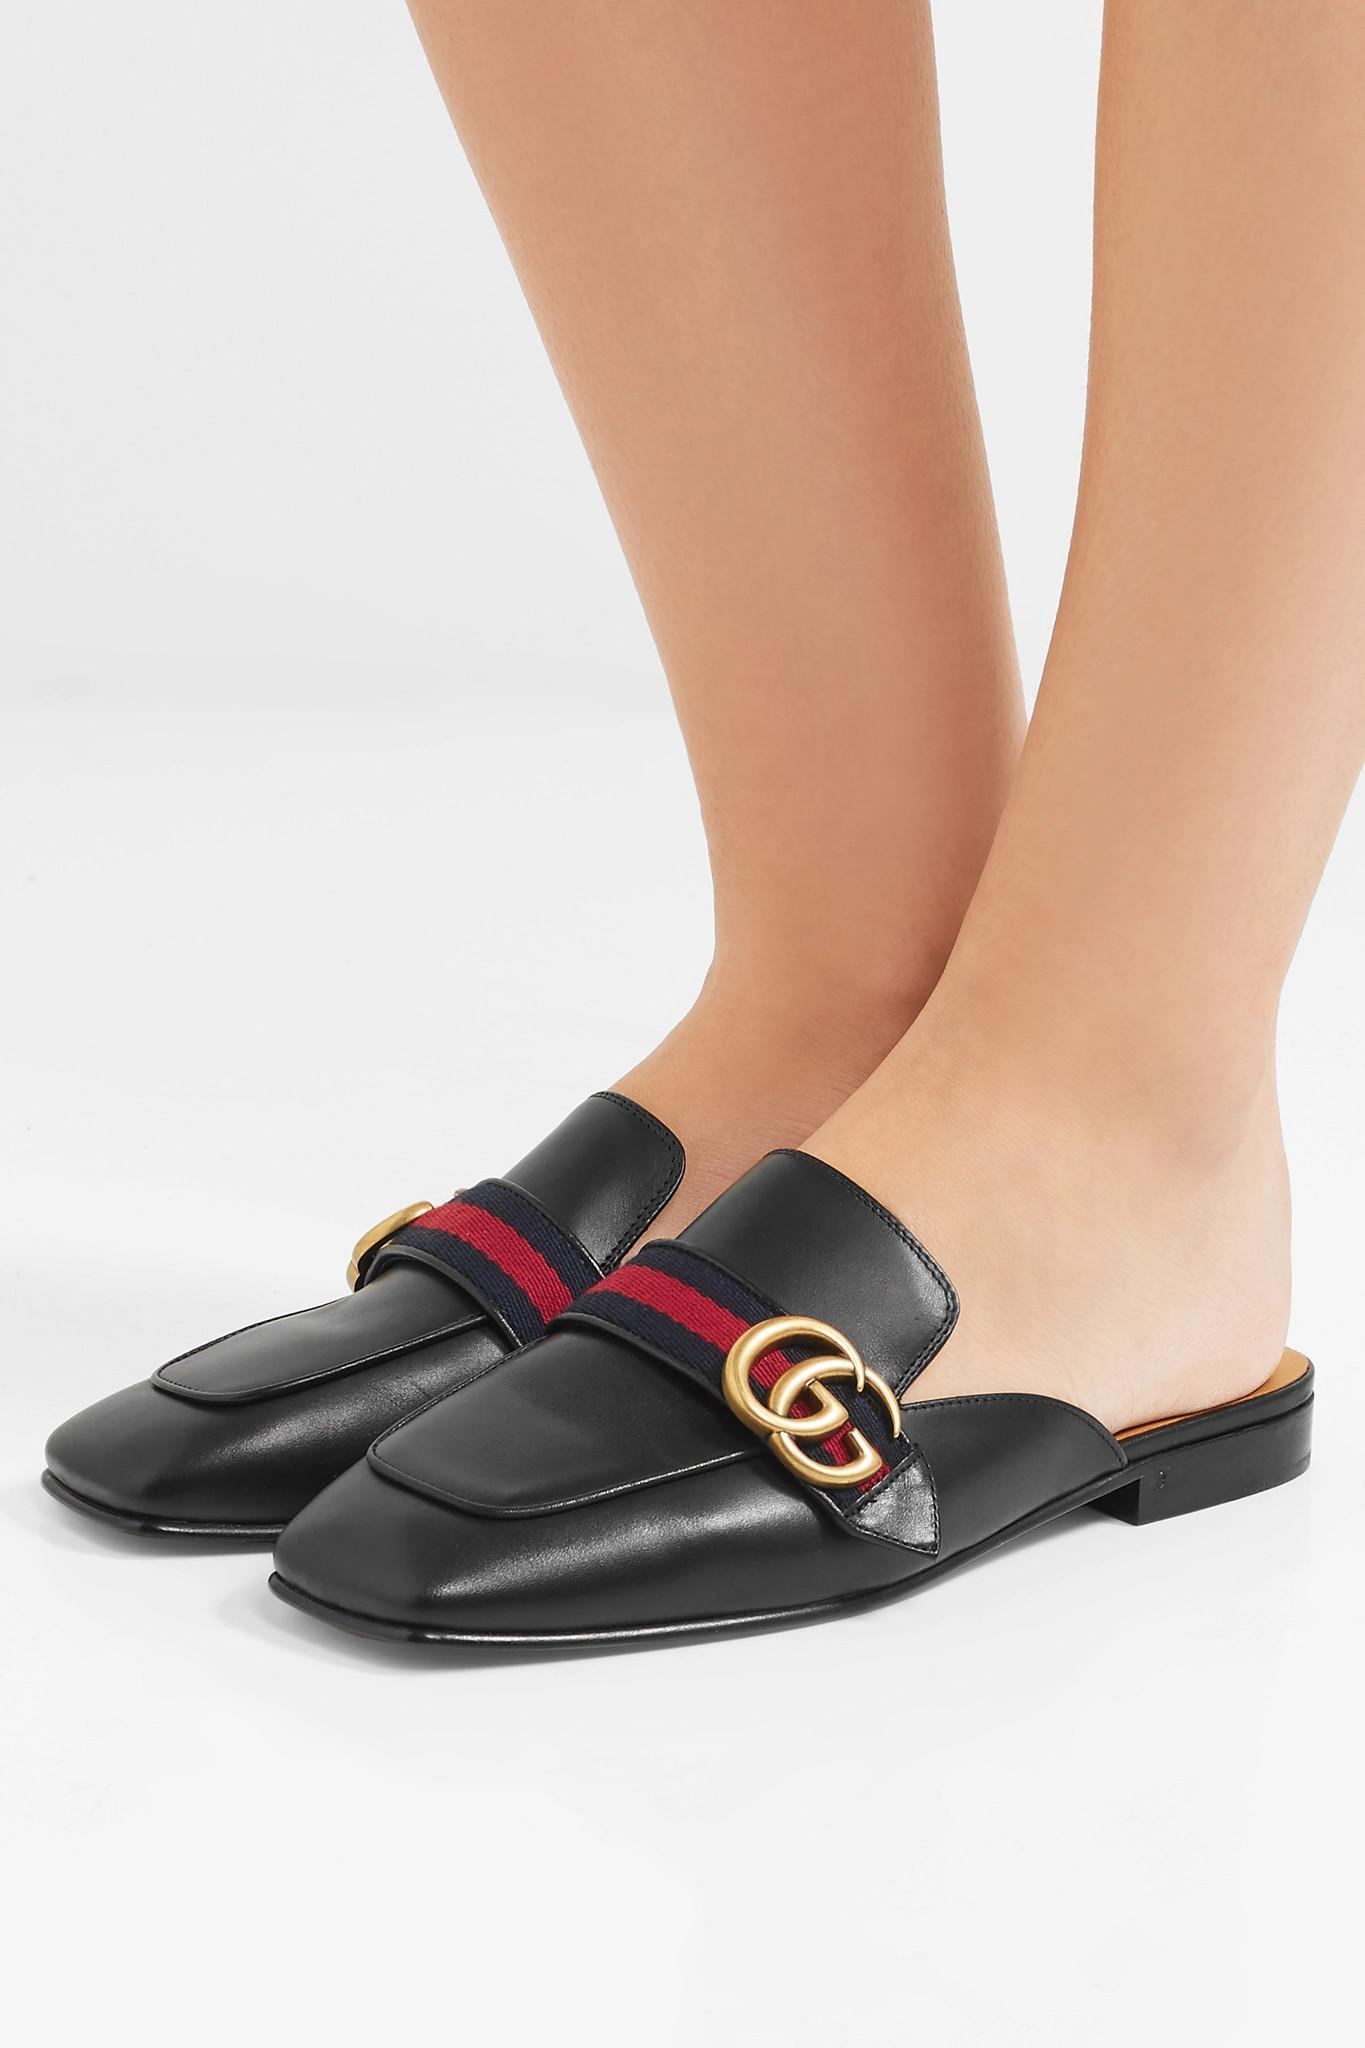 43602a8e6812 Gucci - Black Peyton Leather Slippers - Lyst. View fullscreen